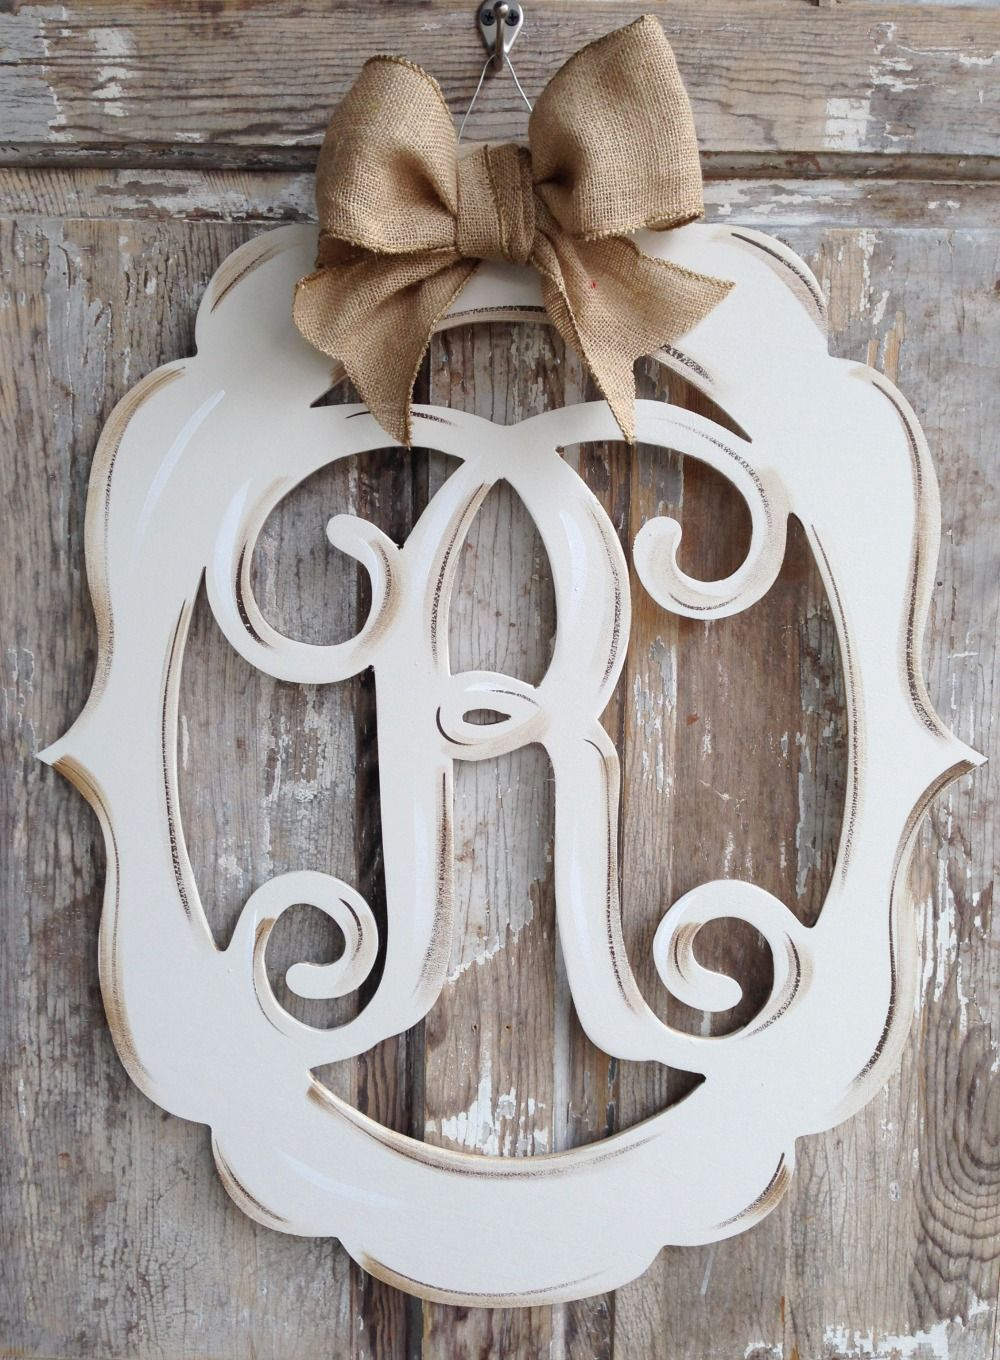 This Beautiful Wooden Monogram Is One Of Our Very Best Sellers The Hand Painted Distress Finish That I Monogram Door Decor Door Decorations Monogram Painting